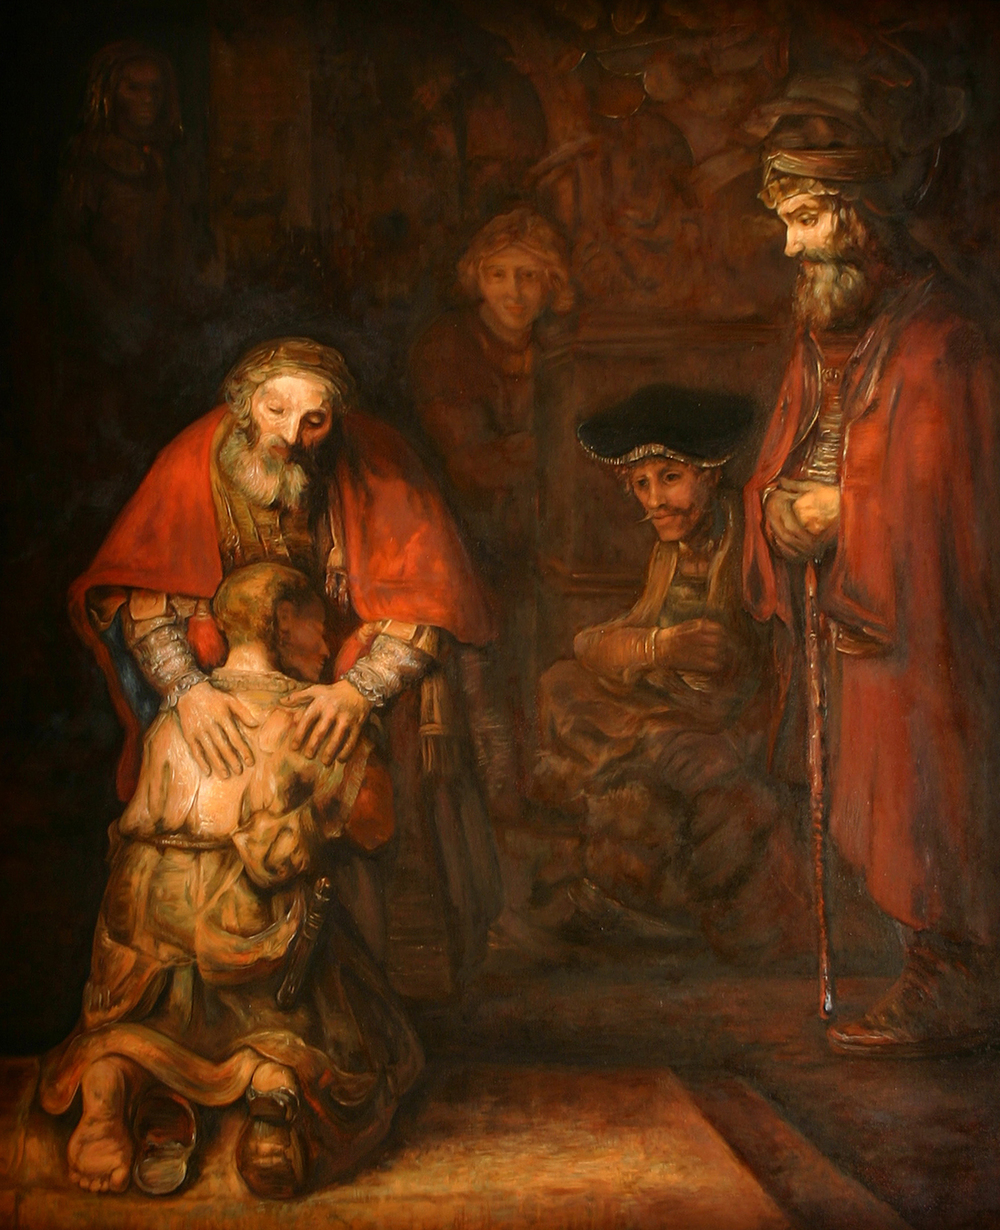 The Prodigal Son by Rembrandt / Reproduction in oils: Nic Iacovetti